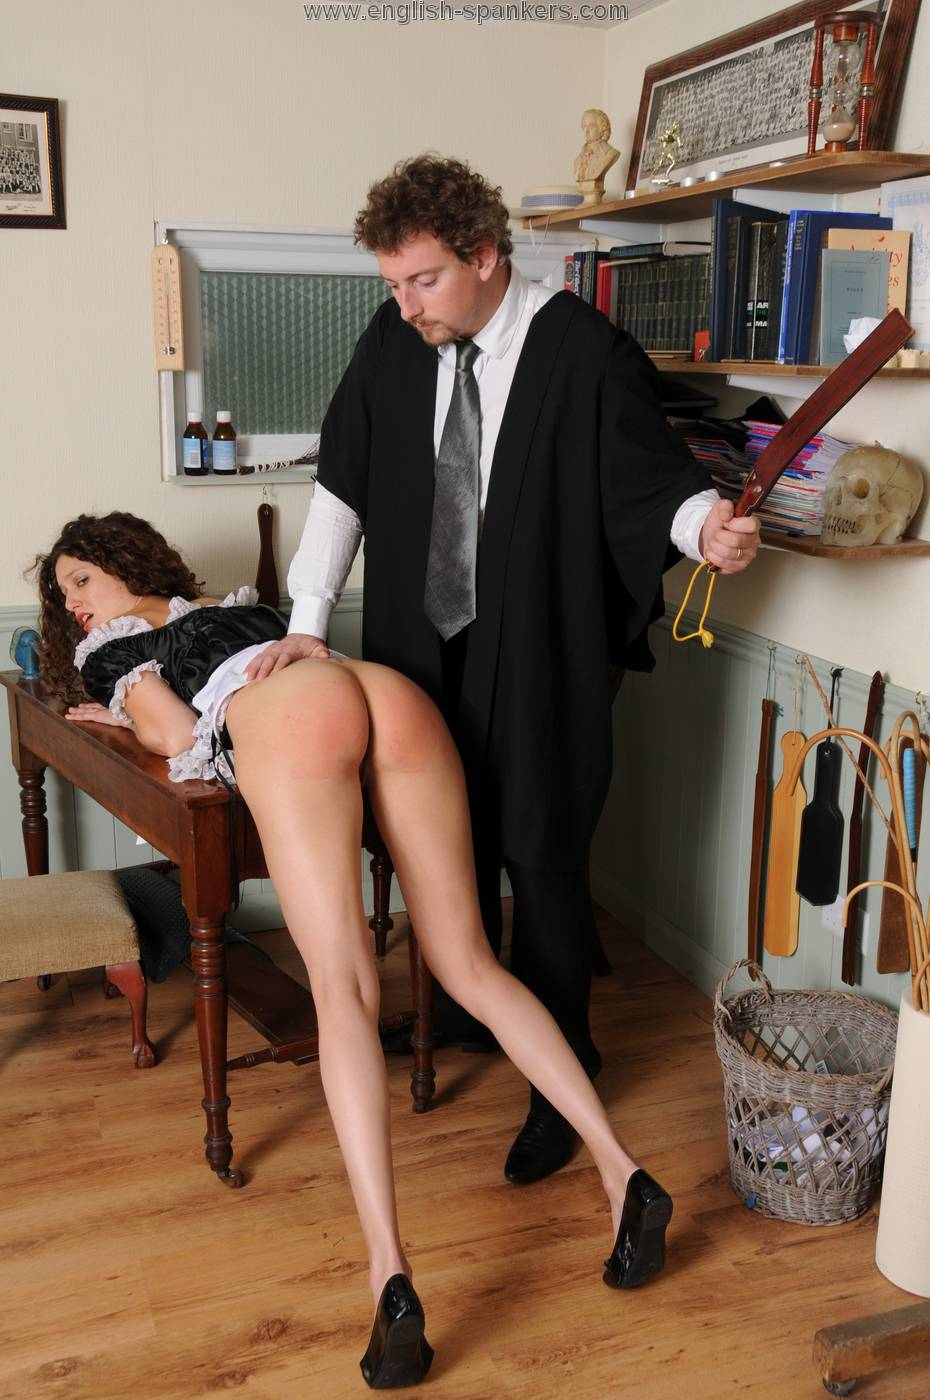 Teacher spanking and talking dirty to her student